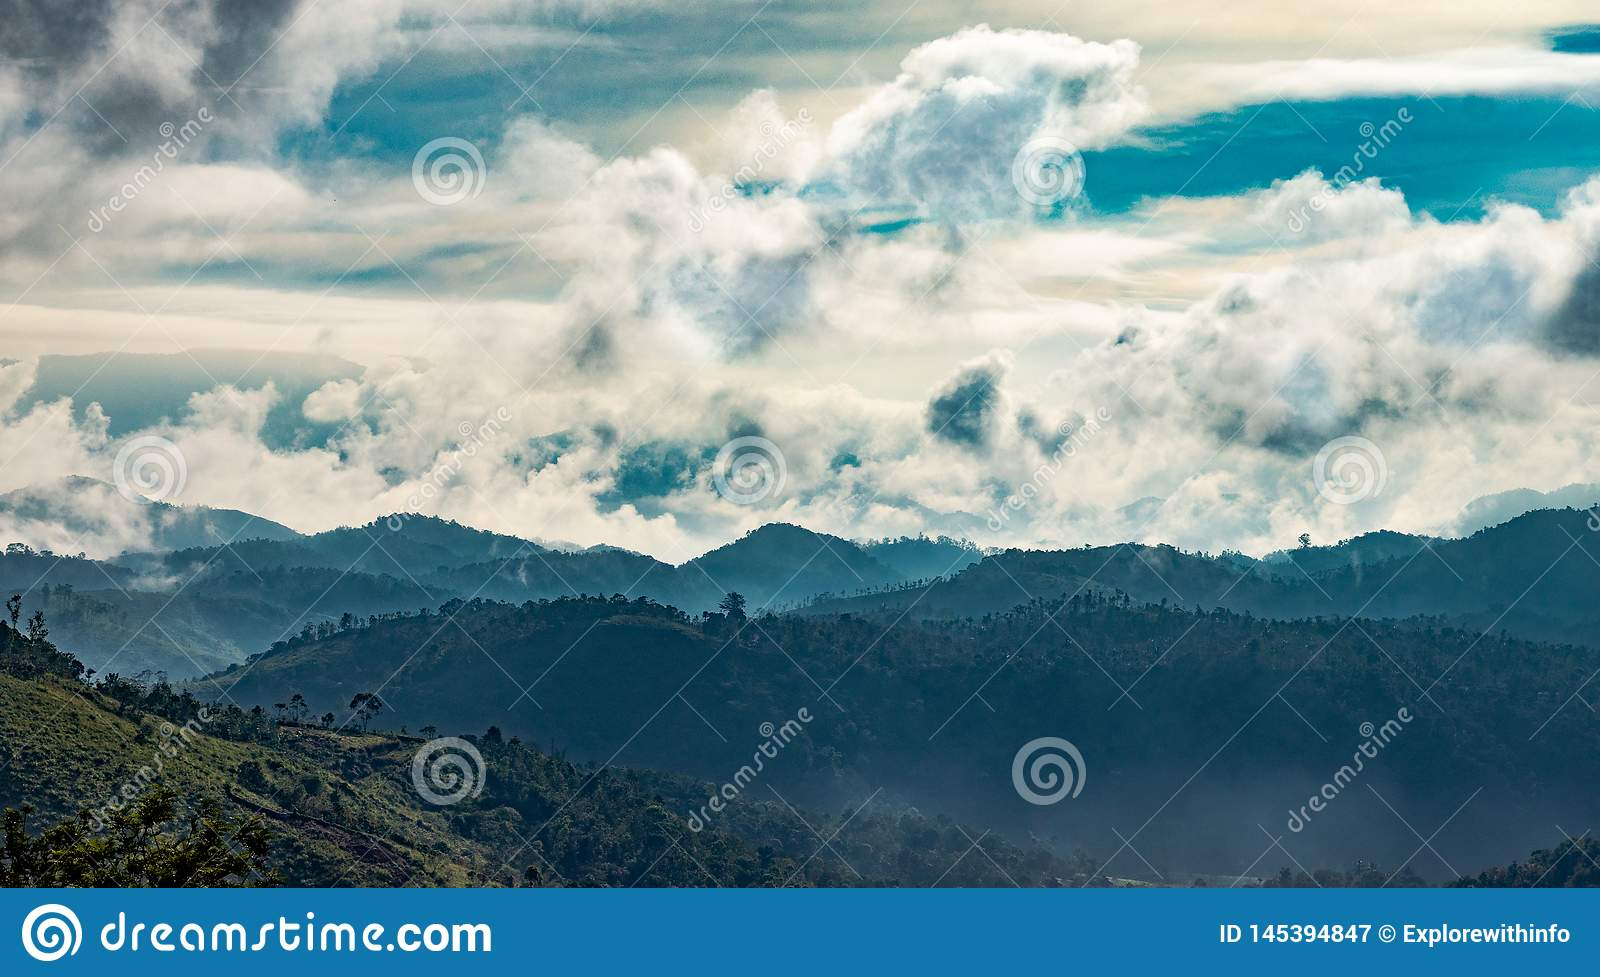 Layer of hills with clouds